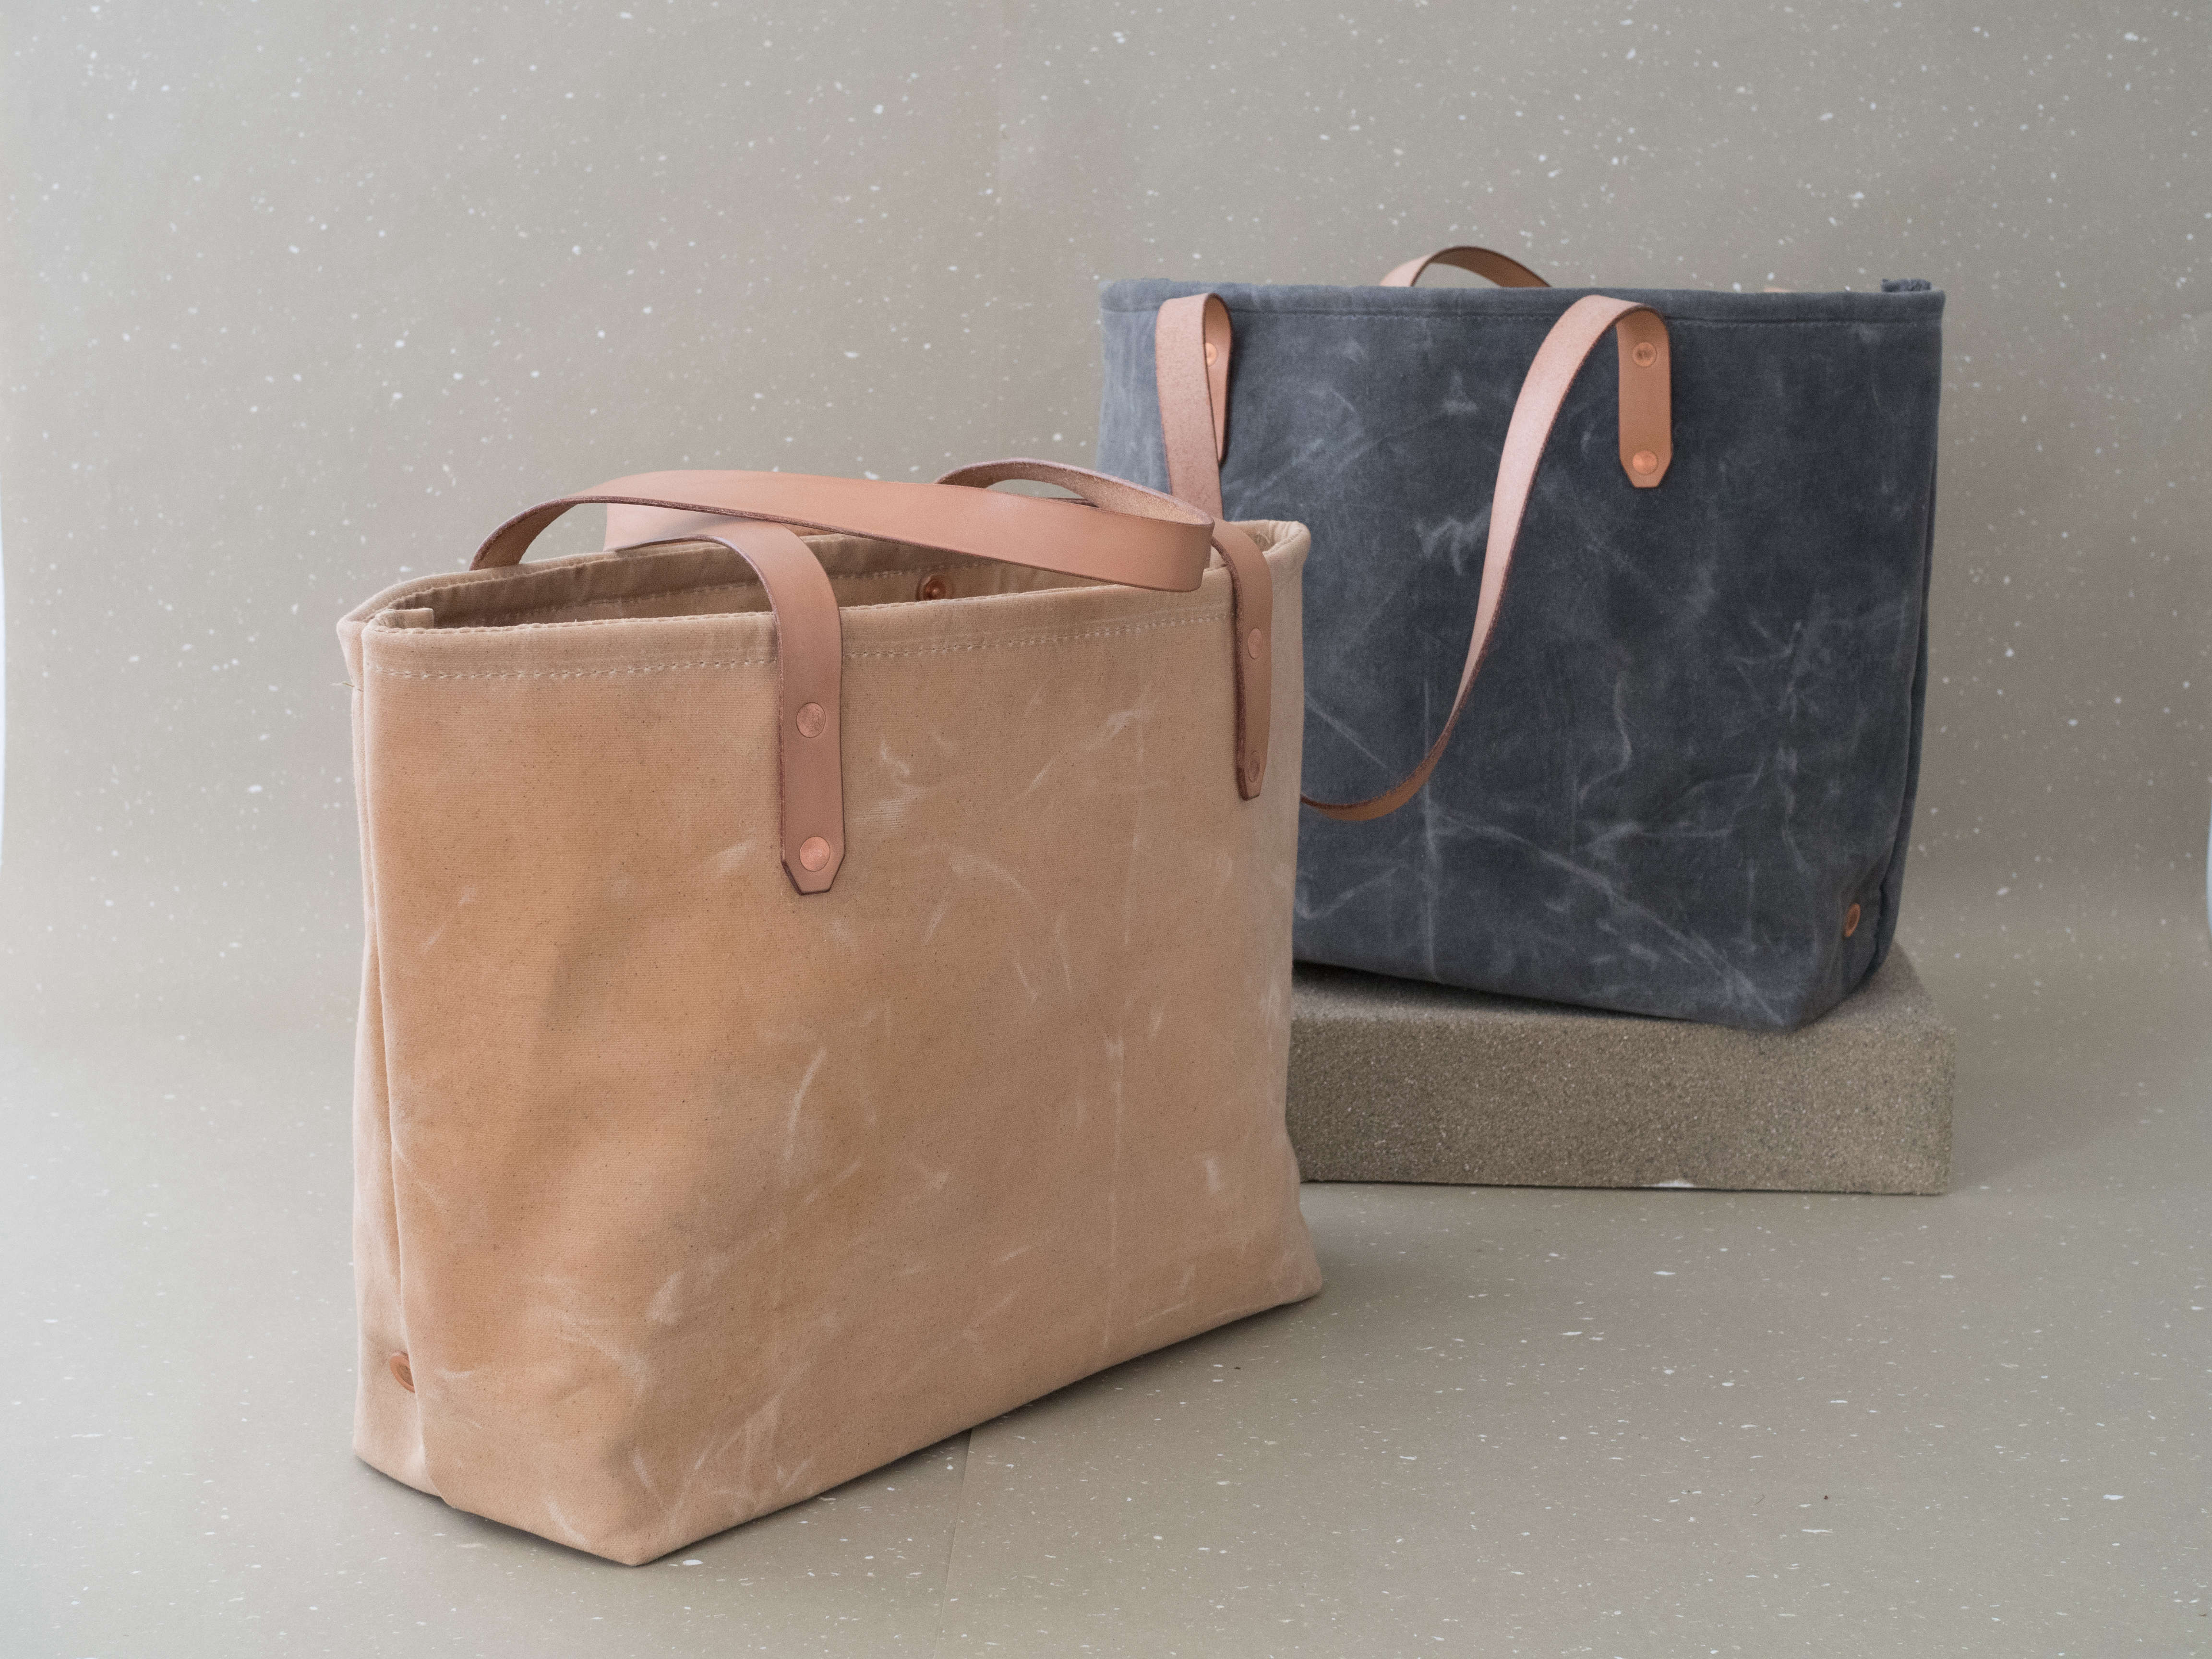 canvas beeswax totes by matt katsaros on remodelista, photo by bryson gill 14